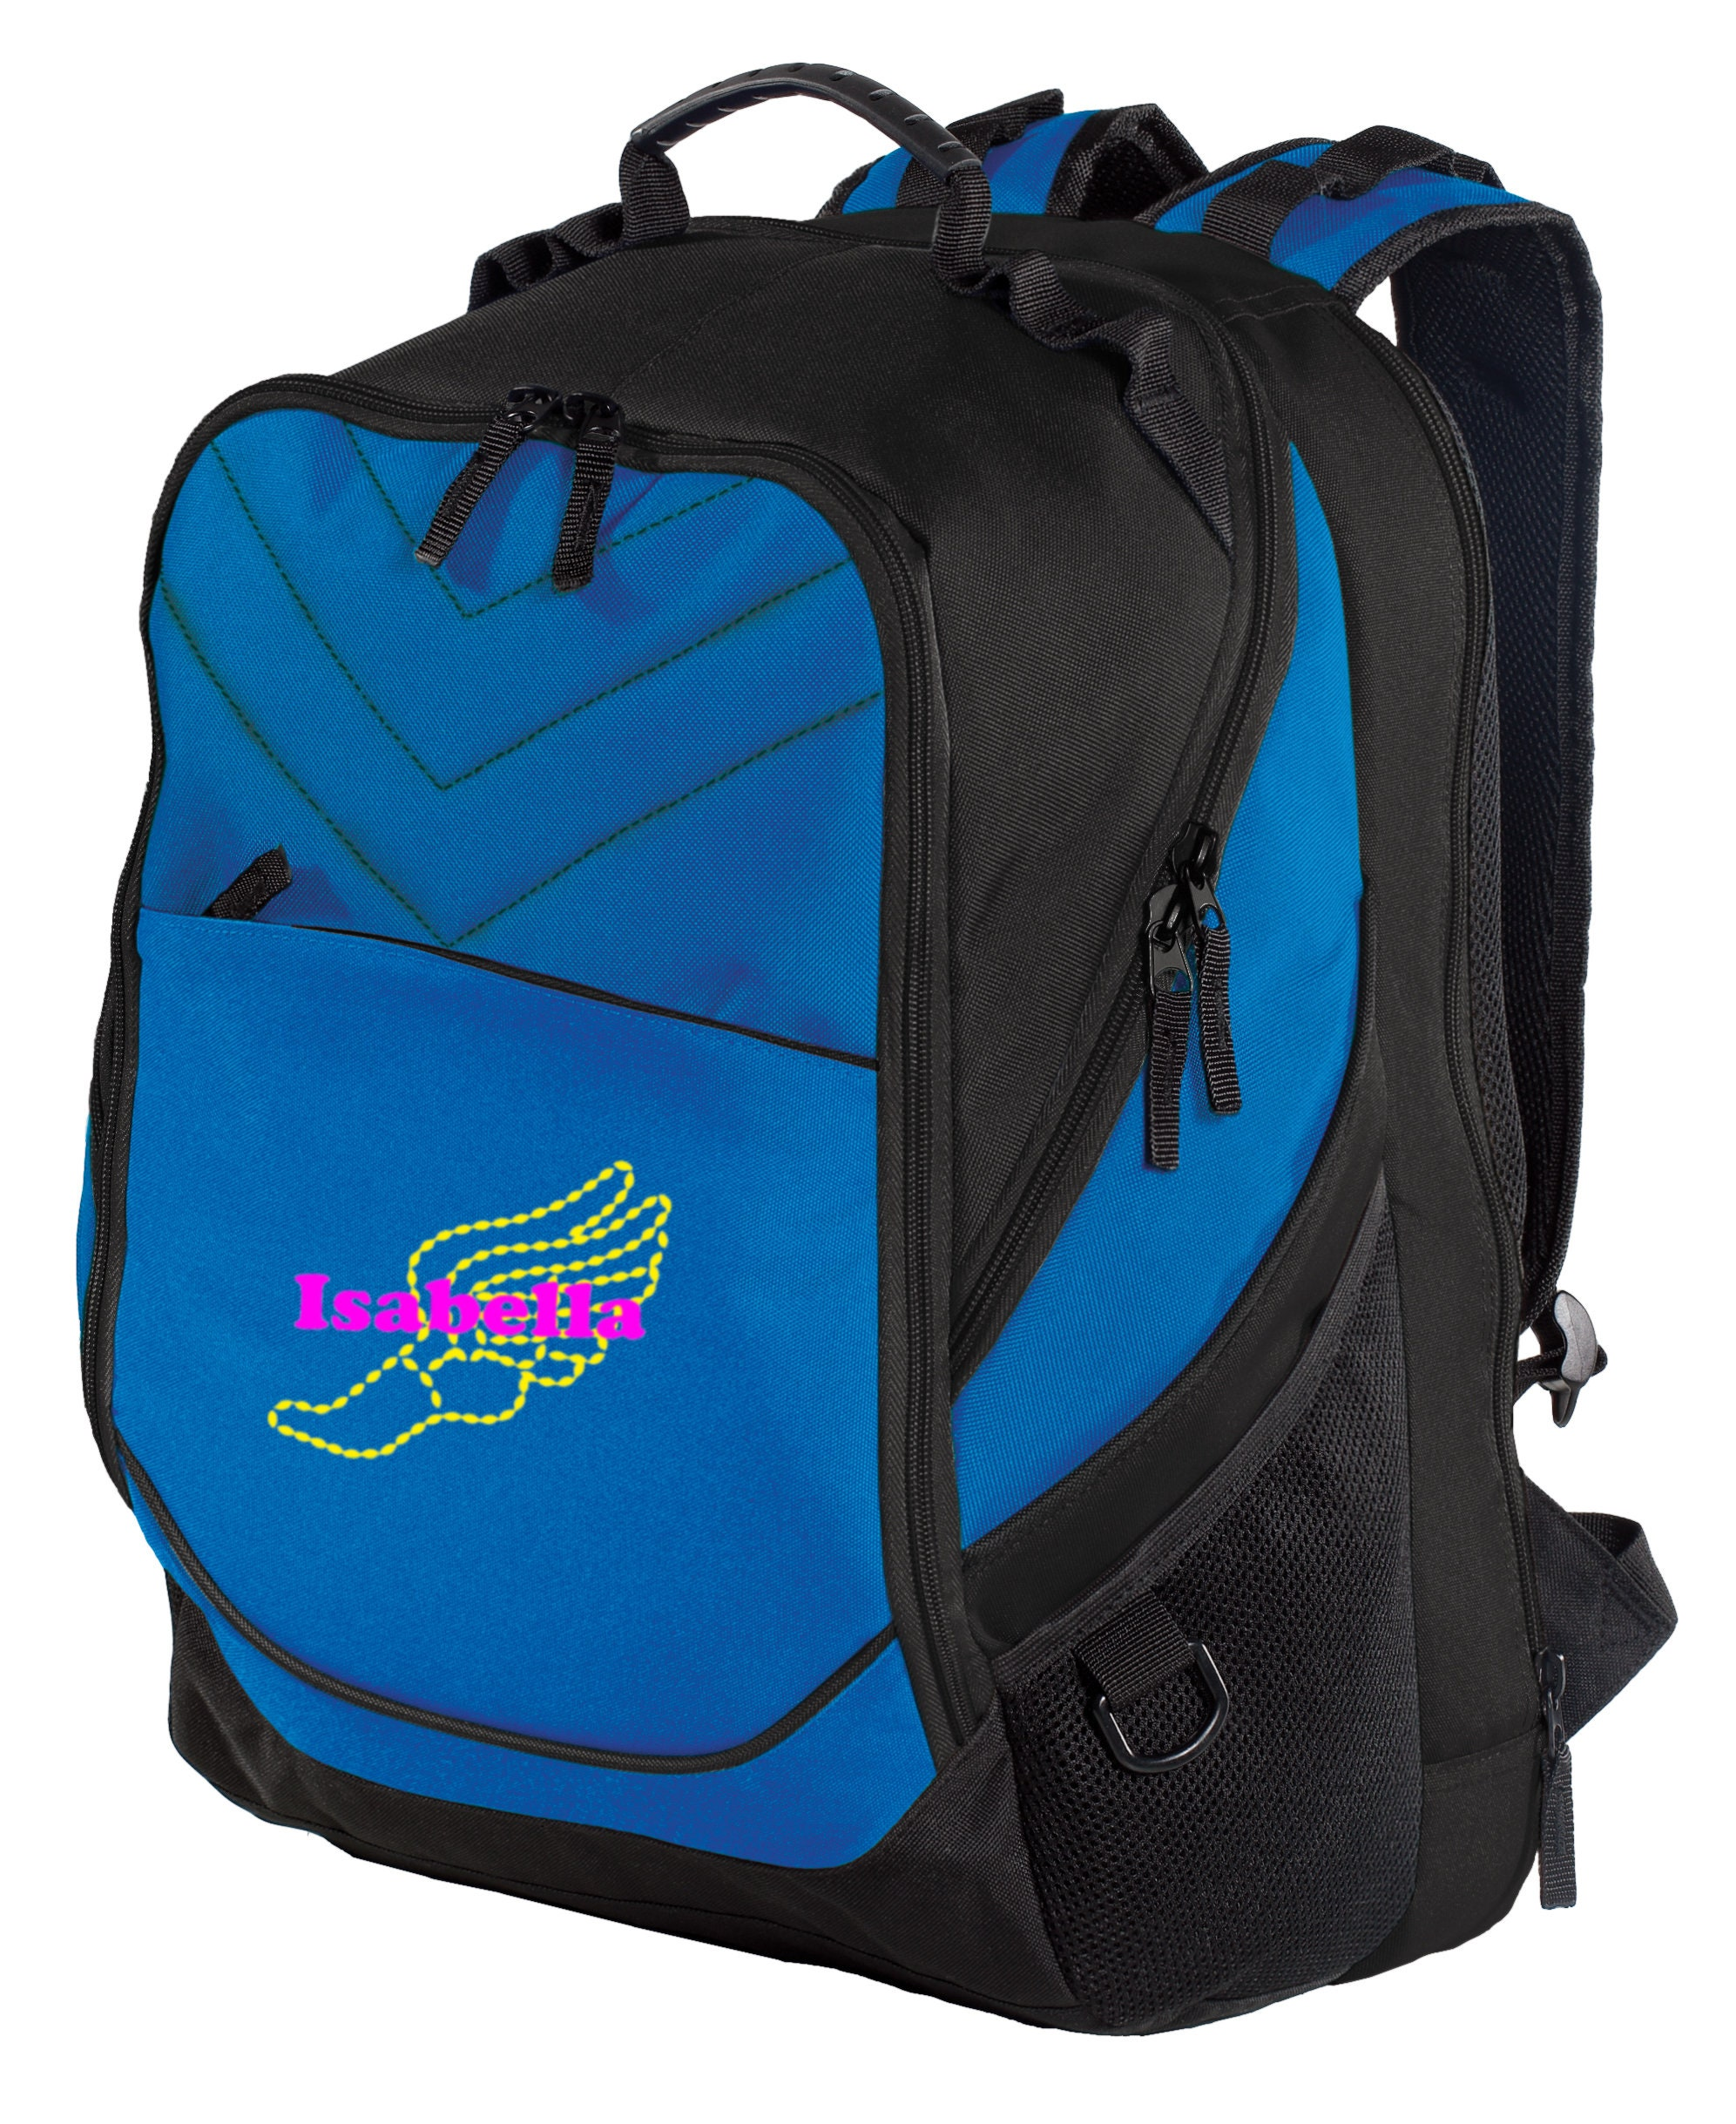 Dark Grey//Black//Shock Blue Personalized Basketball Backpack with Custom Text Heavy Duty School Bag with Customizable Embroidered Monogram Design